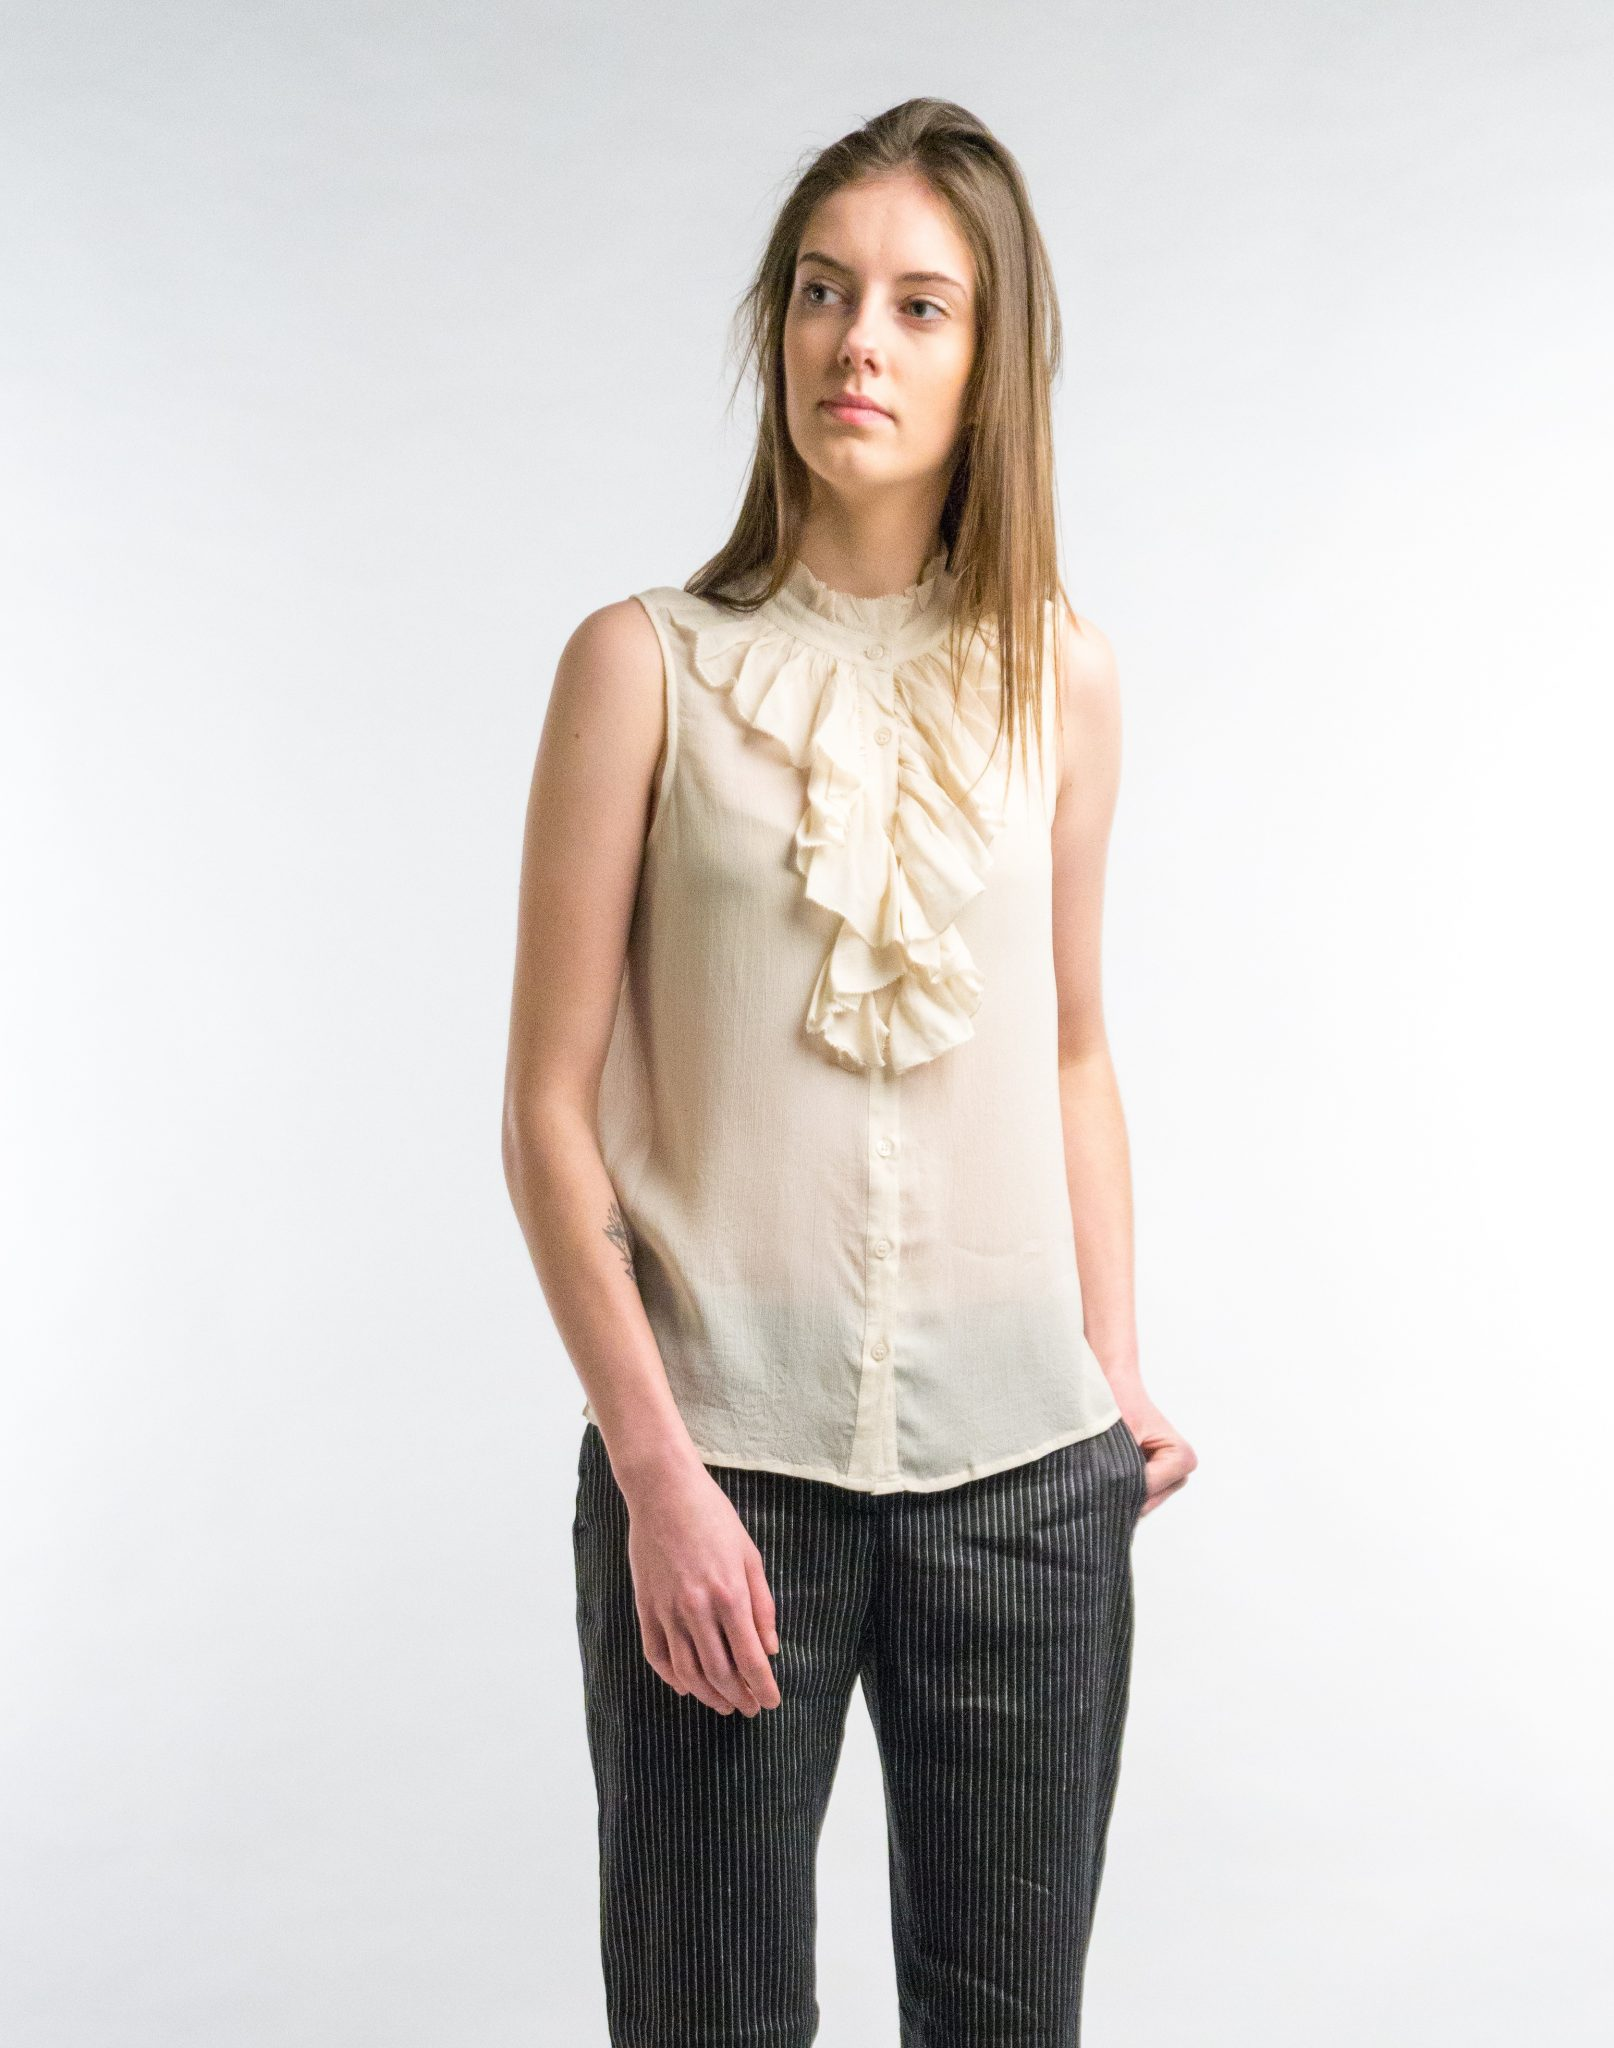 Blouse crepe voile volant – ecru from The Blind Spot